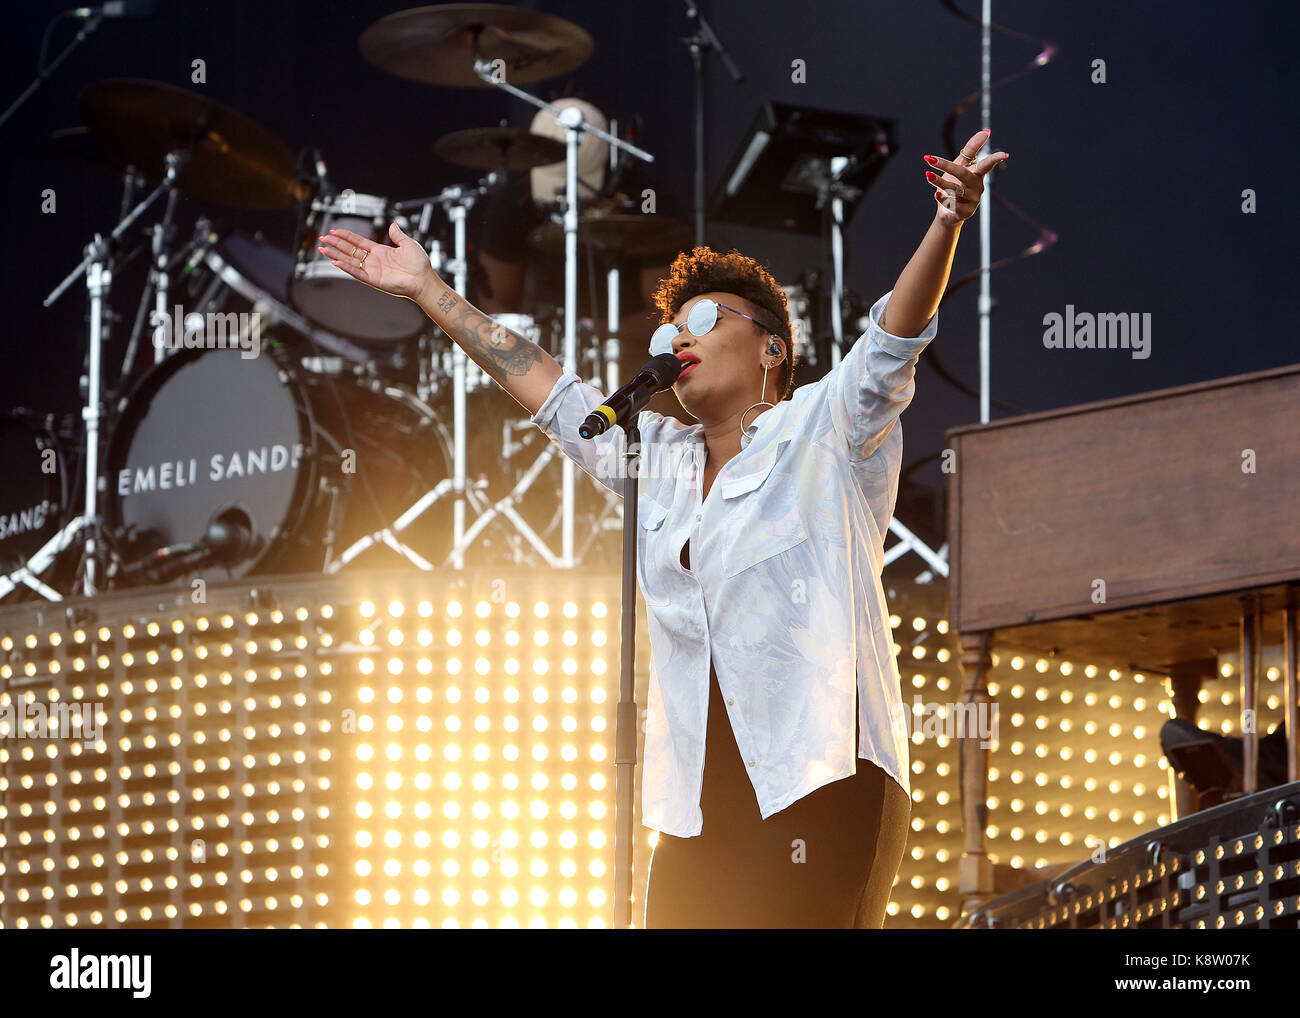 0cc69c2f7 Emeli Sande performing on the main stage during Day Two of V Festival at  Hylands Park